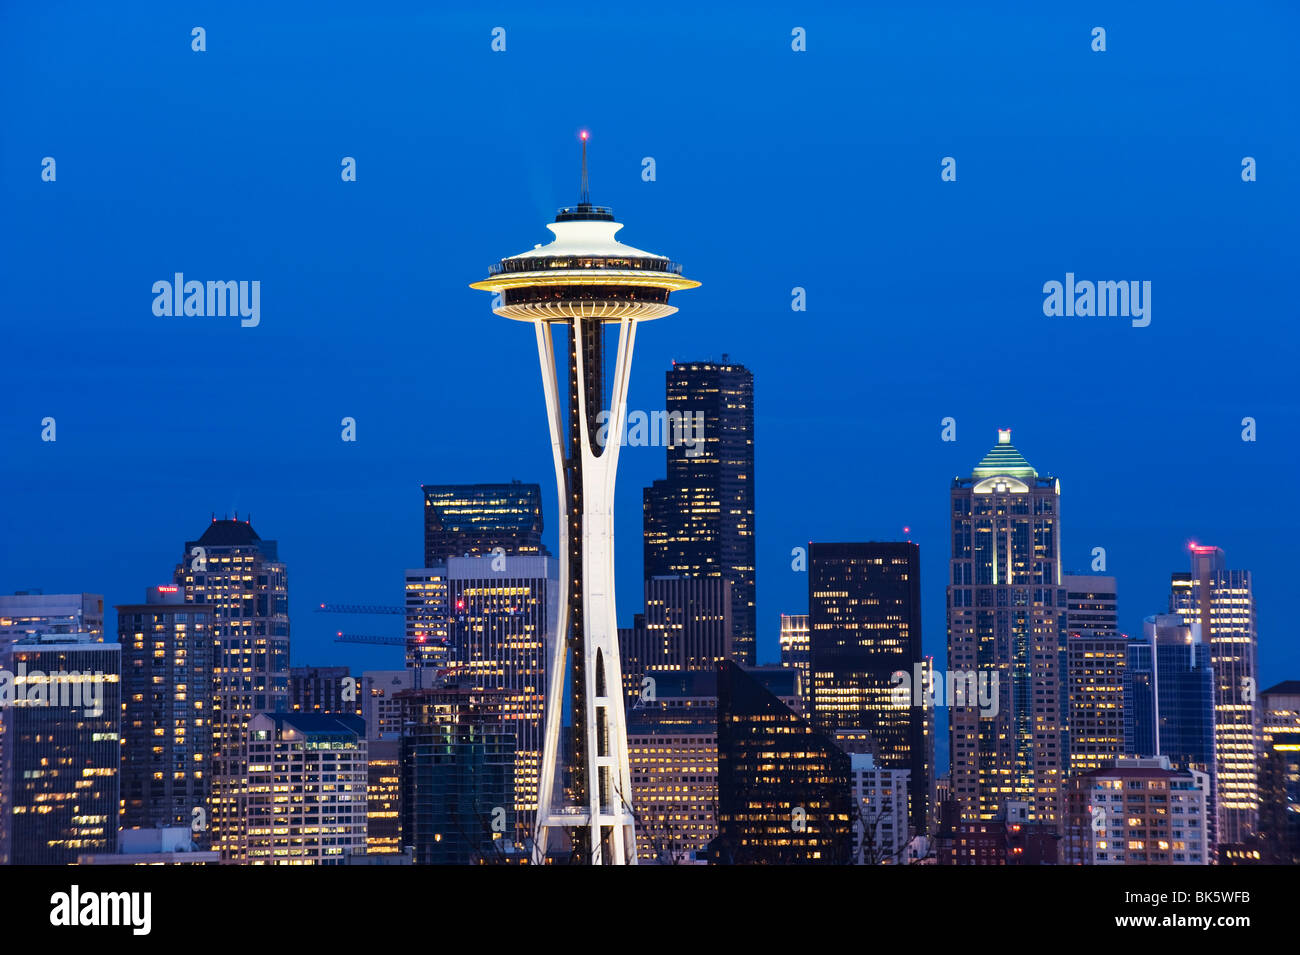 Downtown buildings and the Space Needle, Seattle, Washington State, United States of America, North America - Stock Image